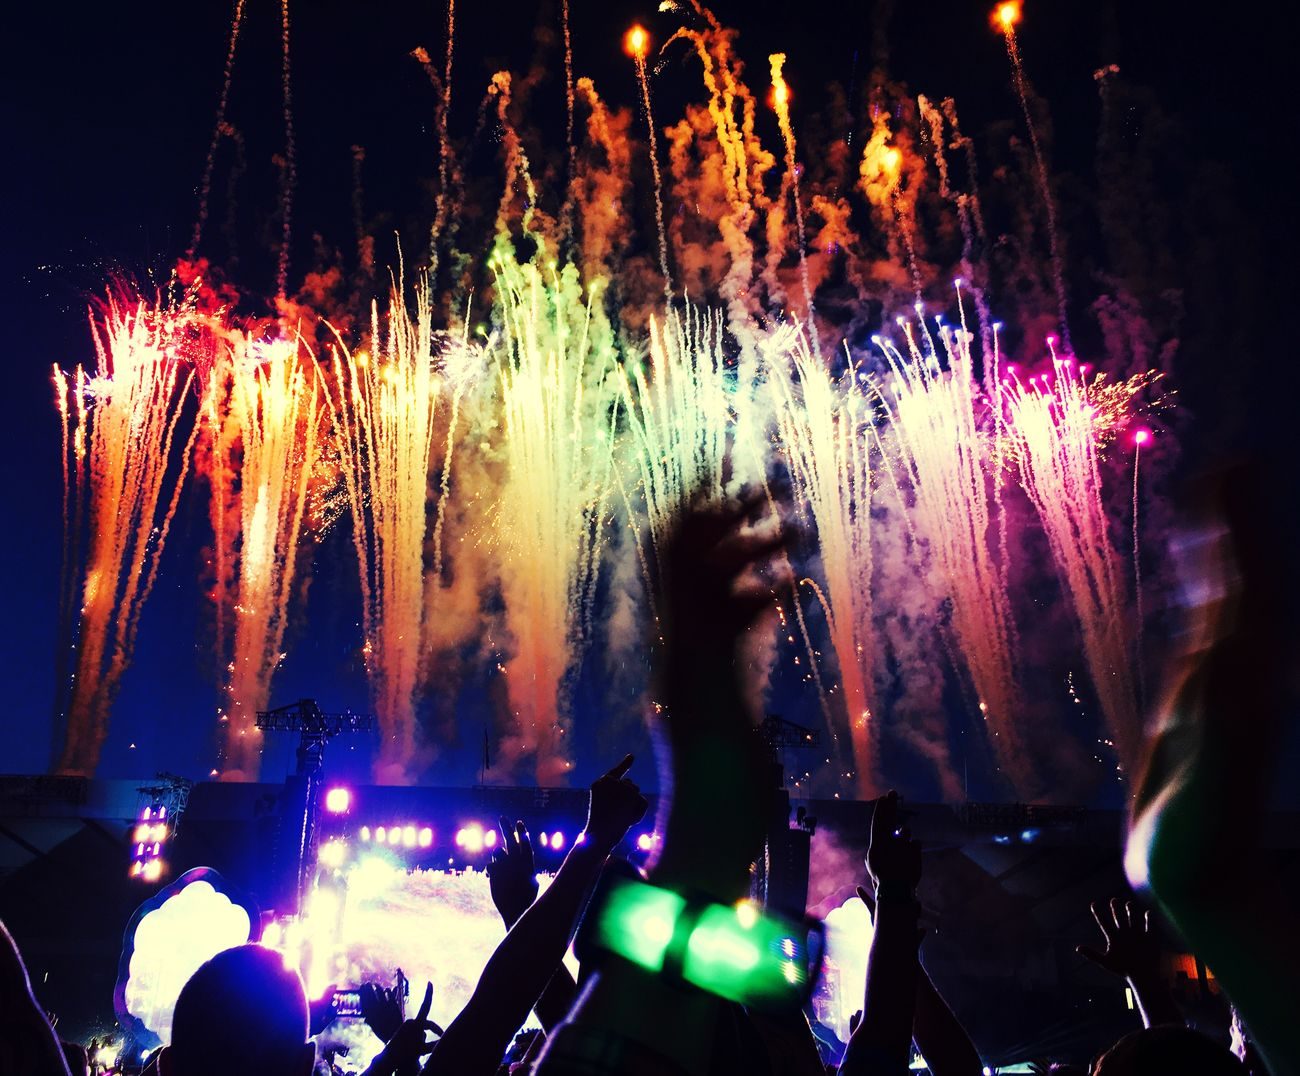 Music Brings Us Together Coldplay Concert  Concert Music Fireworks